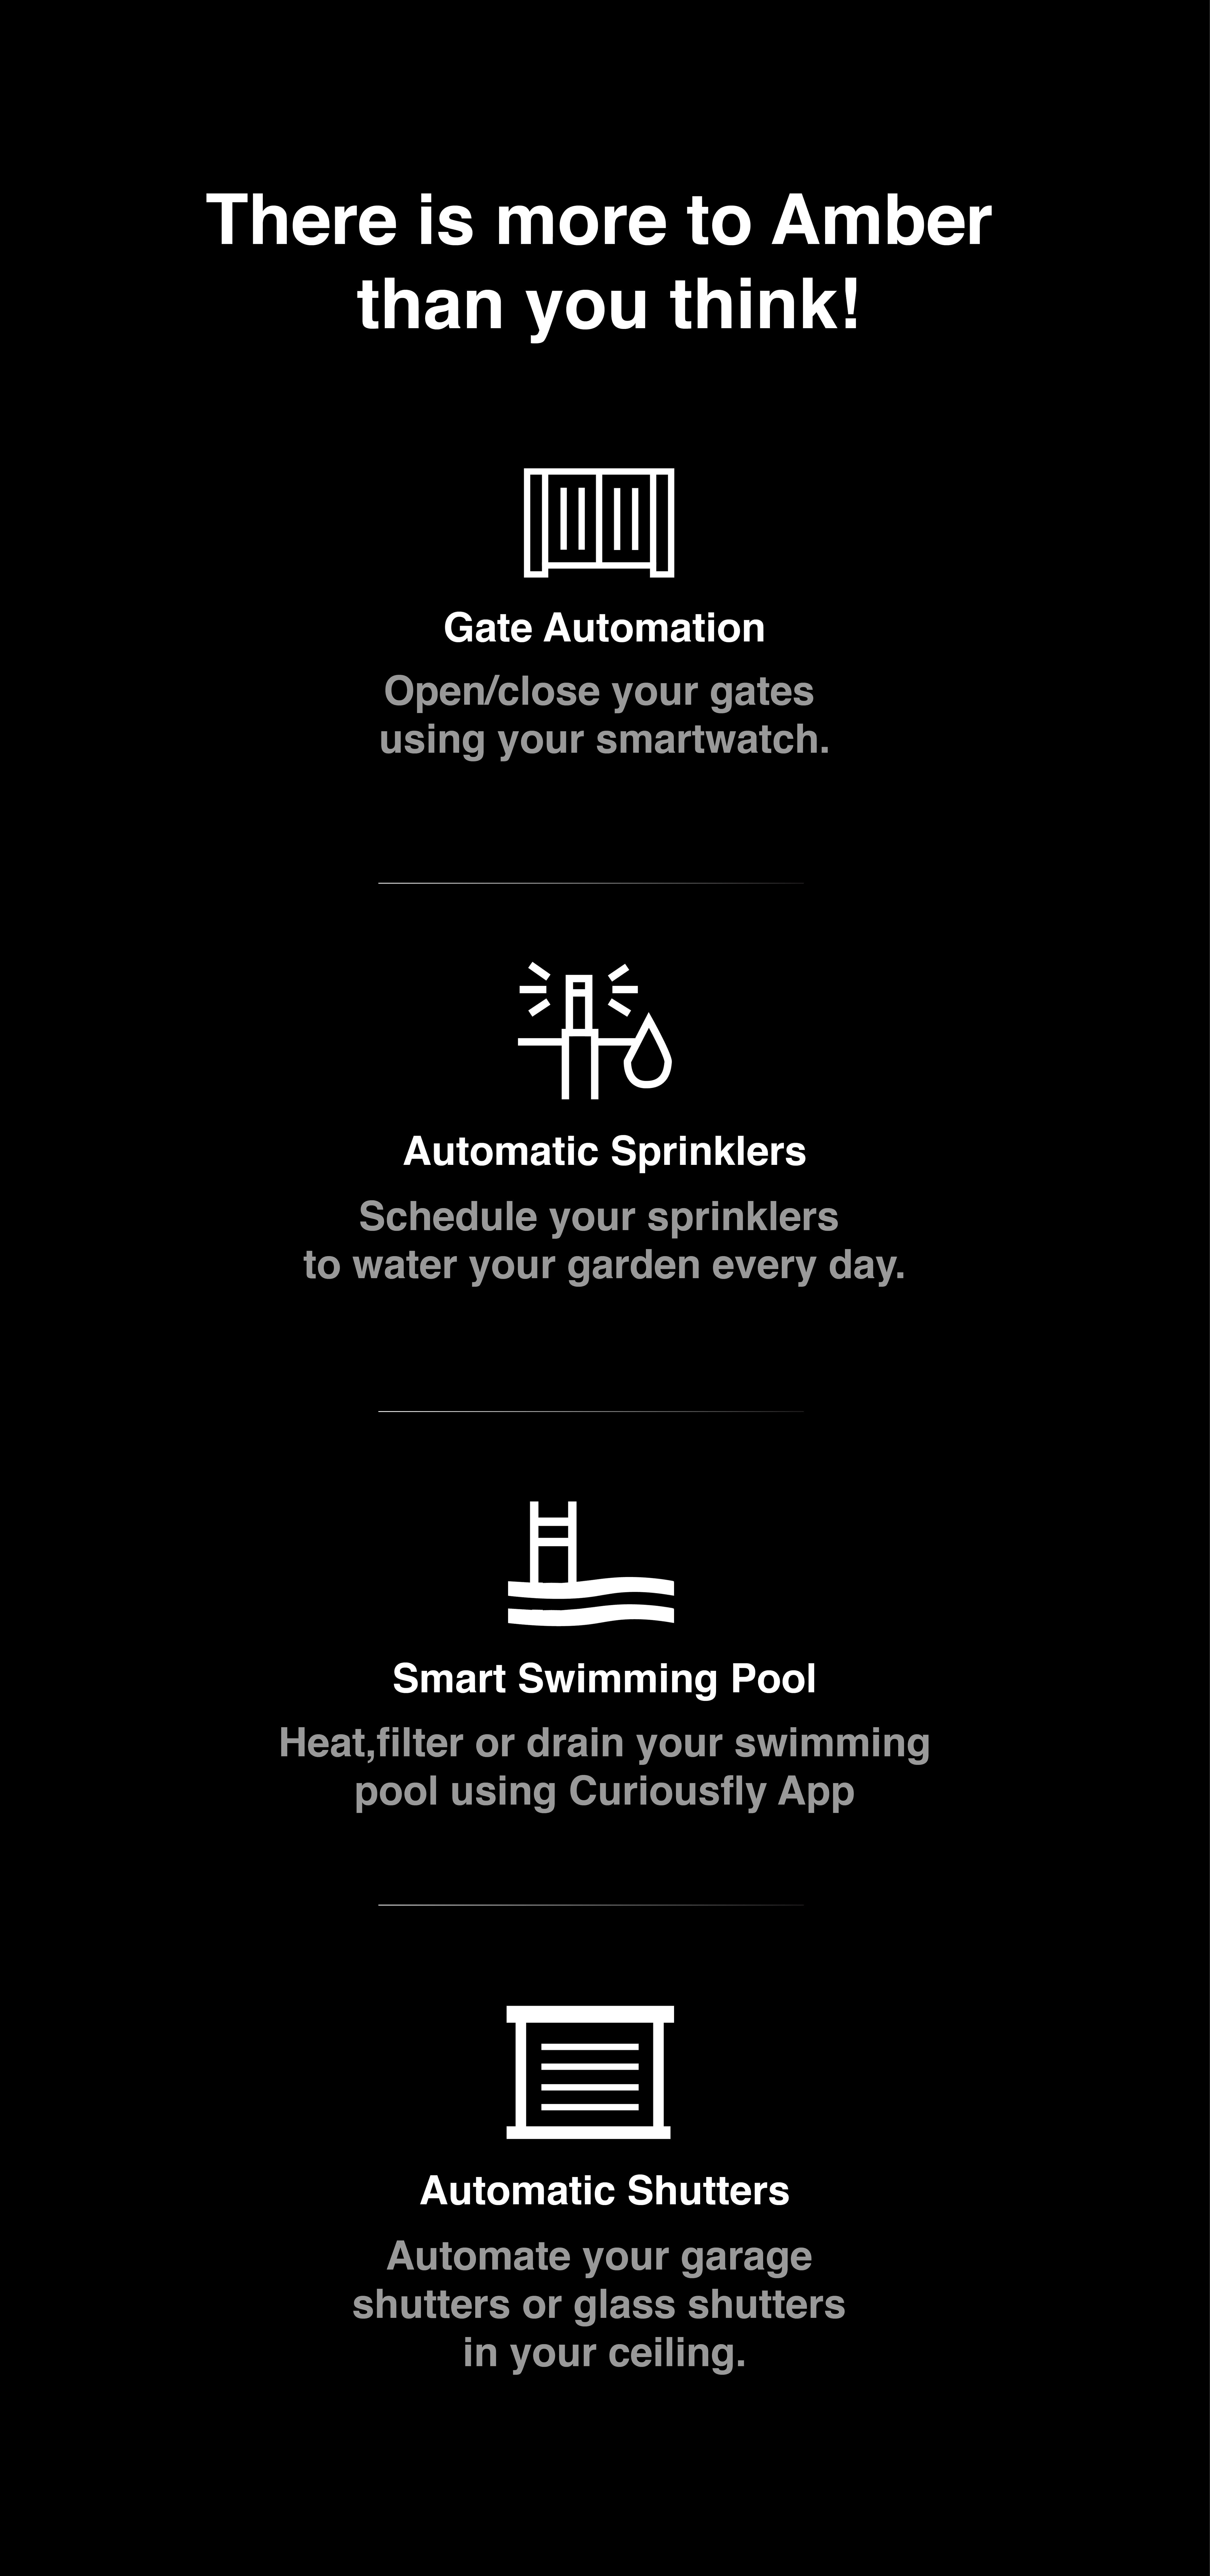 Gate Automation, Automatic Sprinklers, Smart Swimming pool, Automatic Shutters